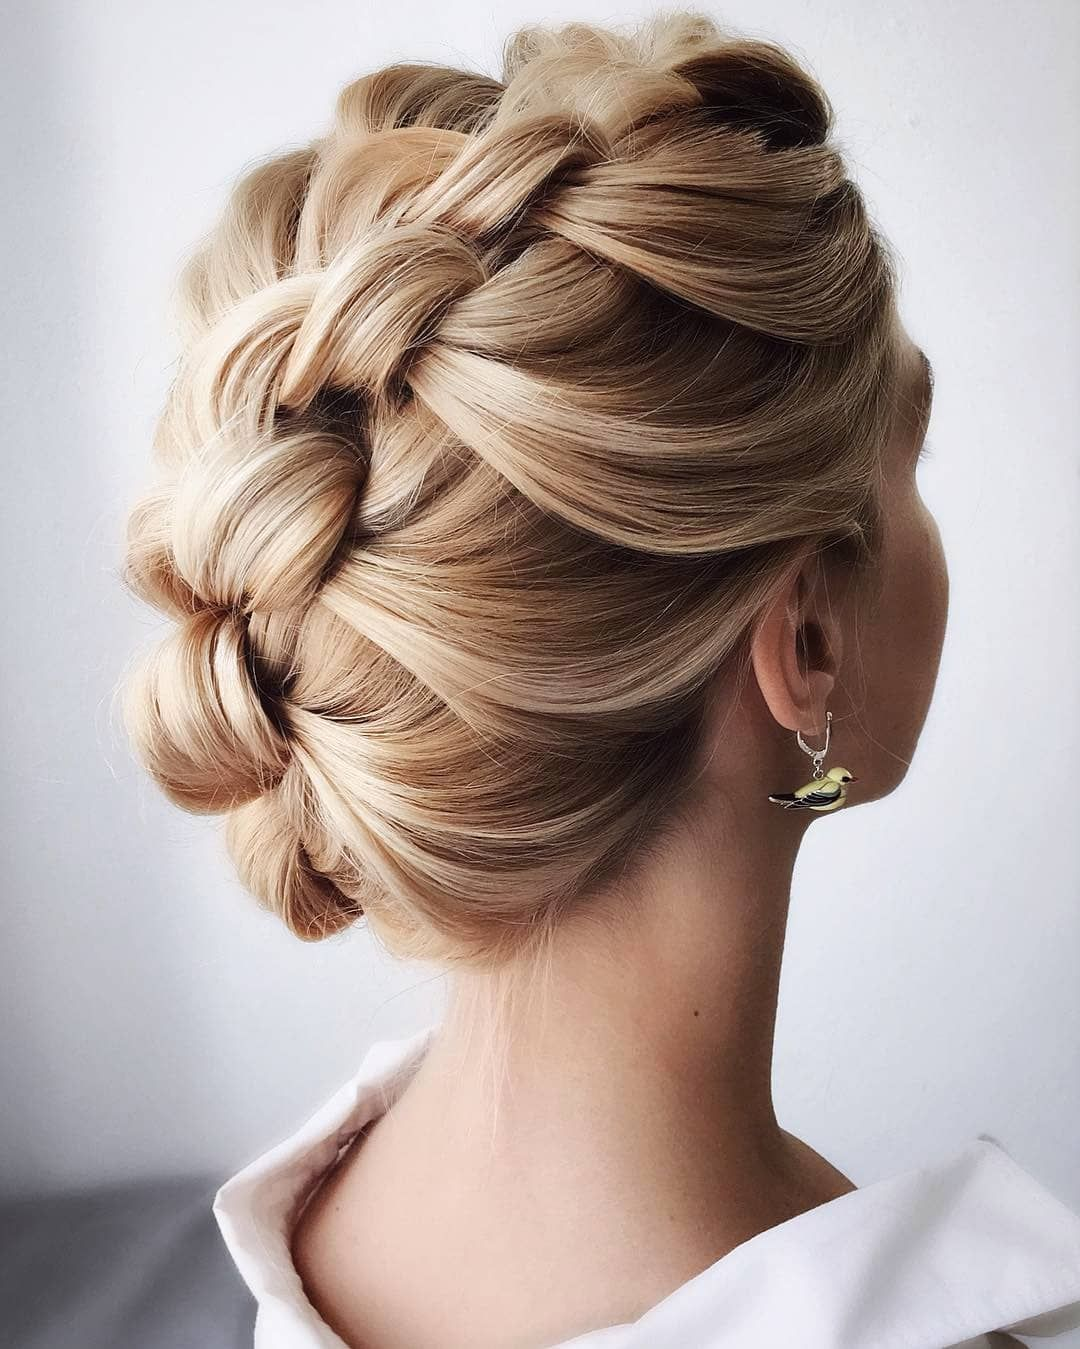 French Braid Wedding Hairstyles Short Hairdo Frenchbraid Wedding Diy Hairdos Wedding In 2020 Braided Hairstyles For Wedding Hairdo Wedding Hair Styles